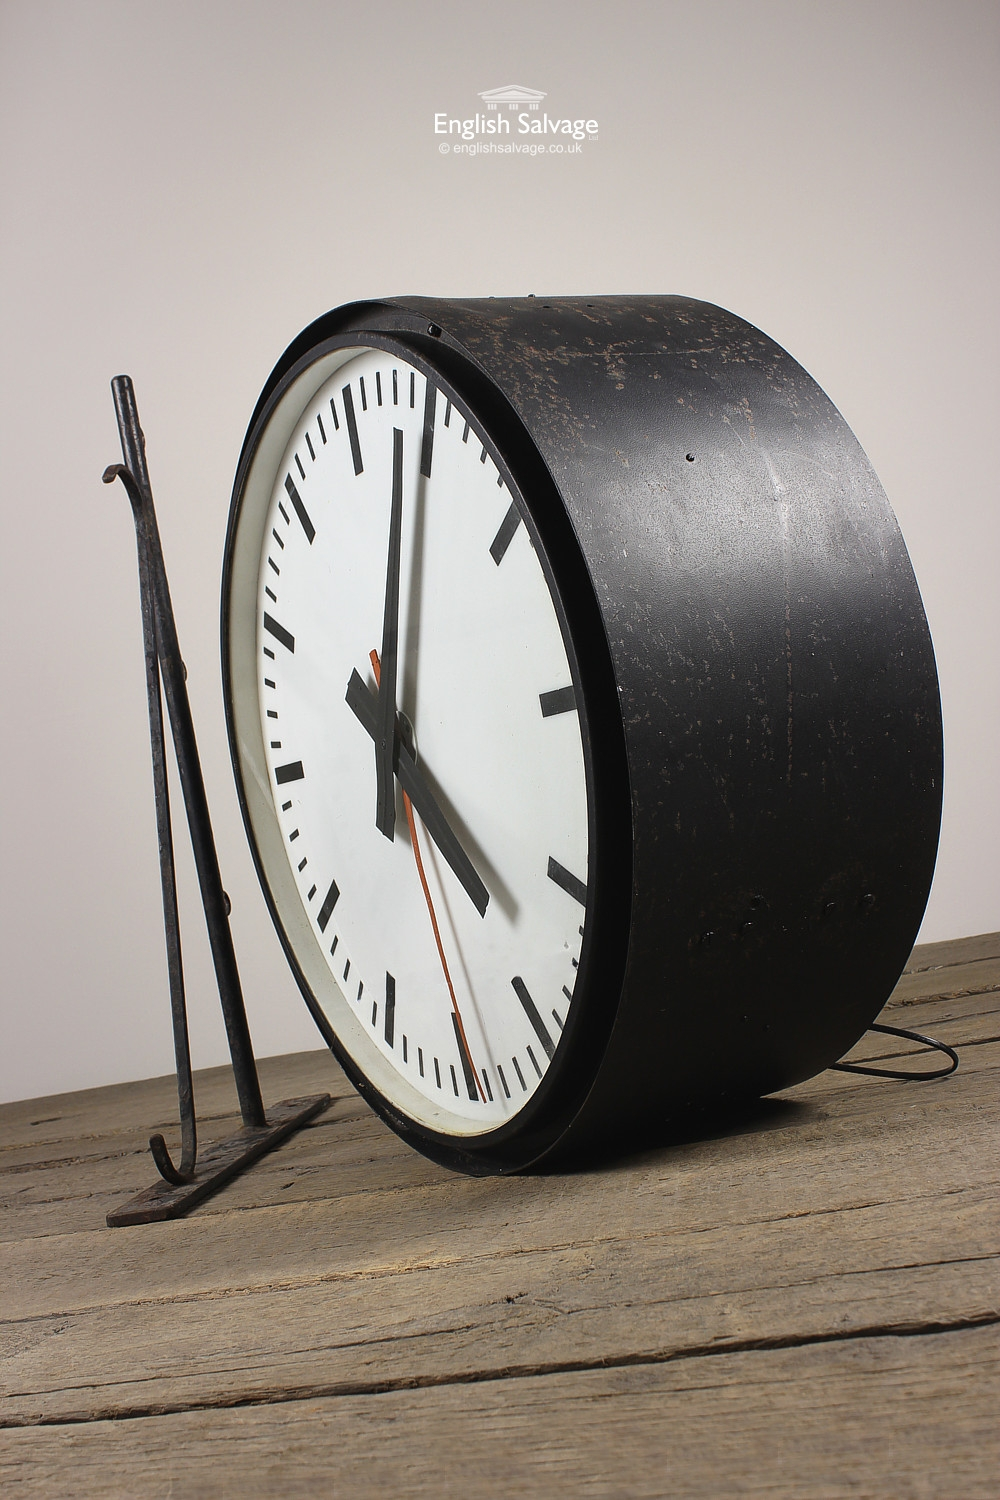 Period Illuminated Wall Mounted Station Clock